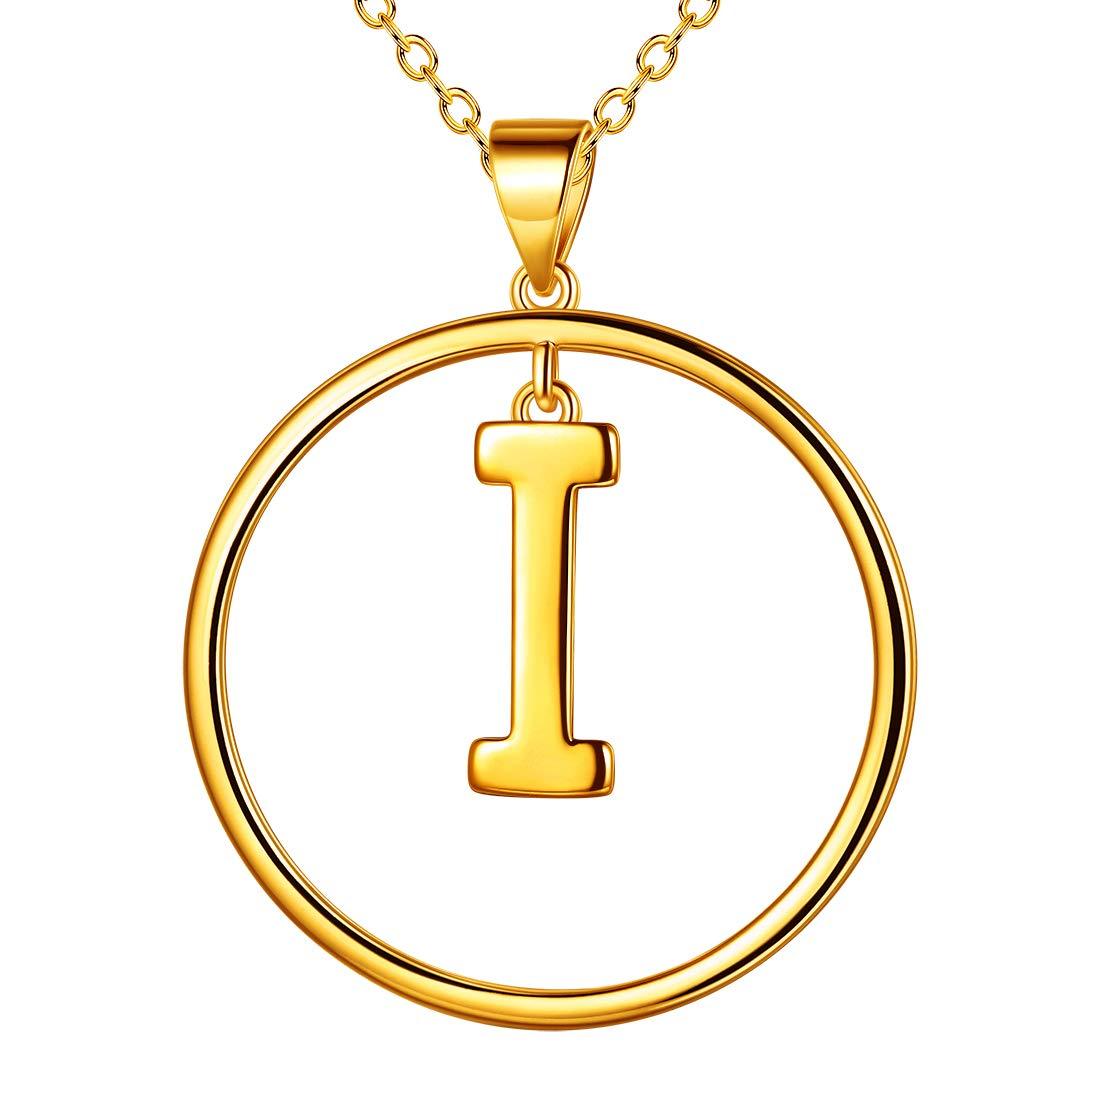 Beautlace Initial Letter A-Z Necklace 18K Gold Plated Round Circle Name Necklaces Alphabet Pendant Jewelry for Women and Girls KP0008